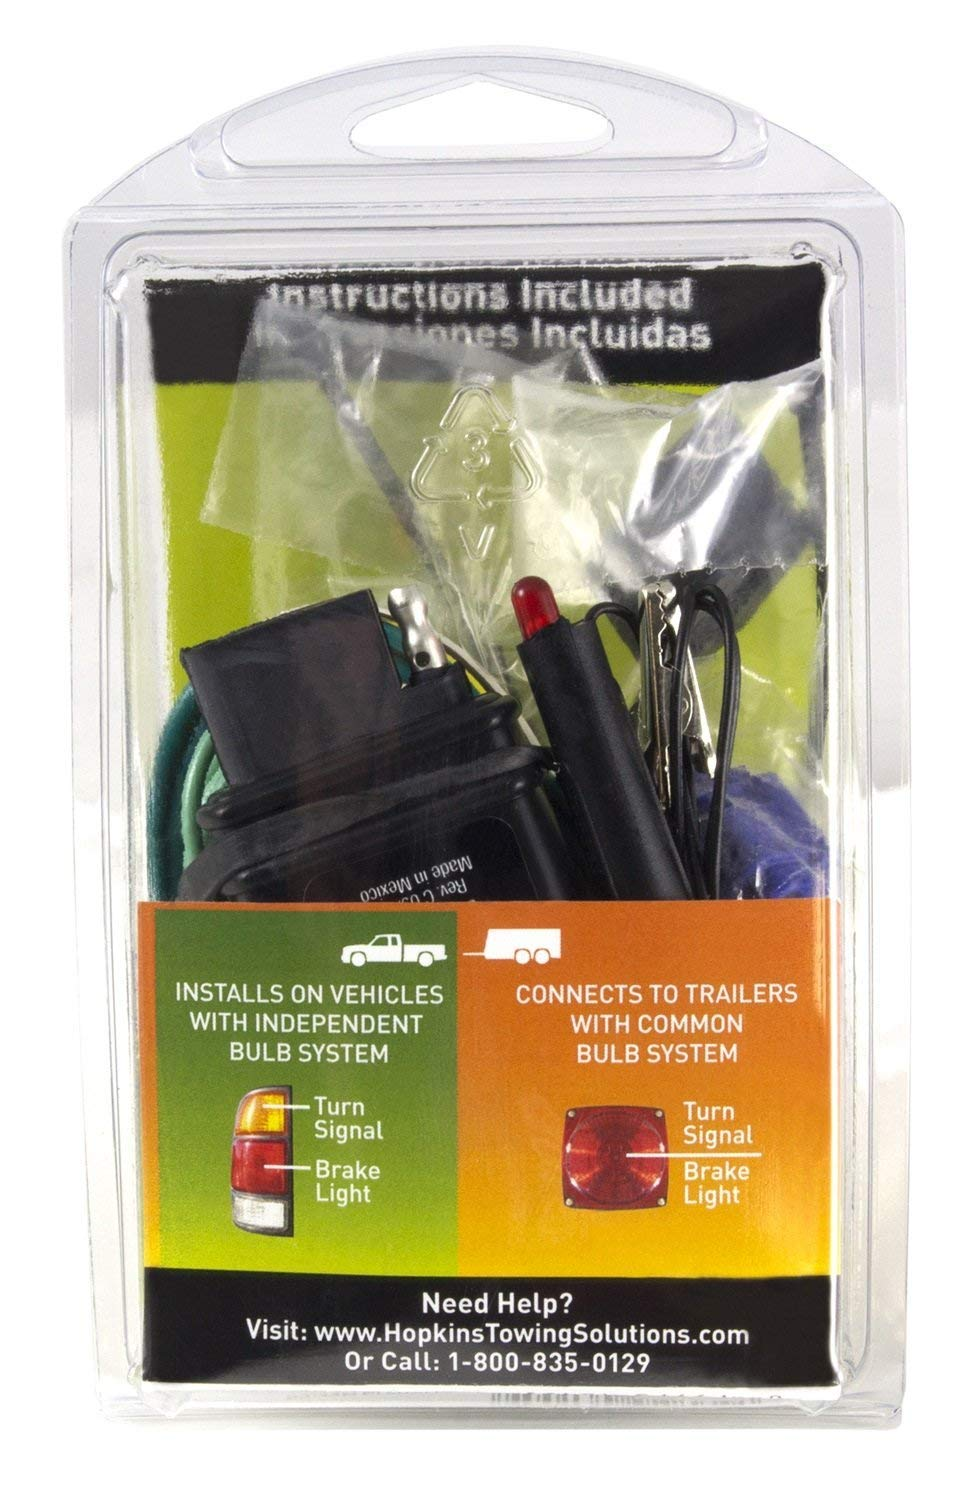 Hopkins 46155 Taillight Converter Universal Kit Automotive Towing Wiring Harness Troubleshooting